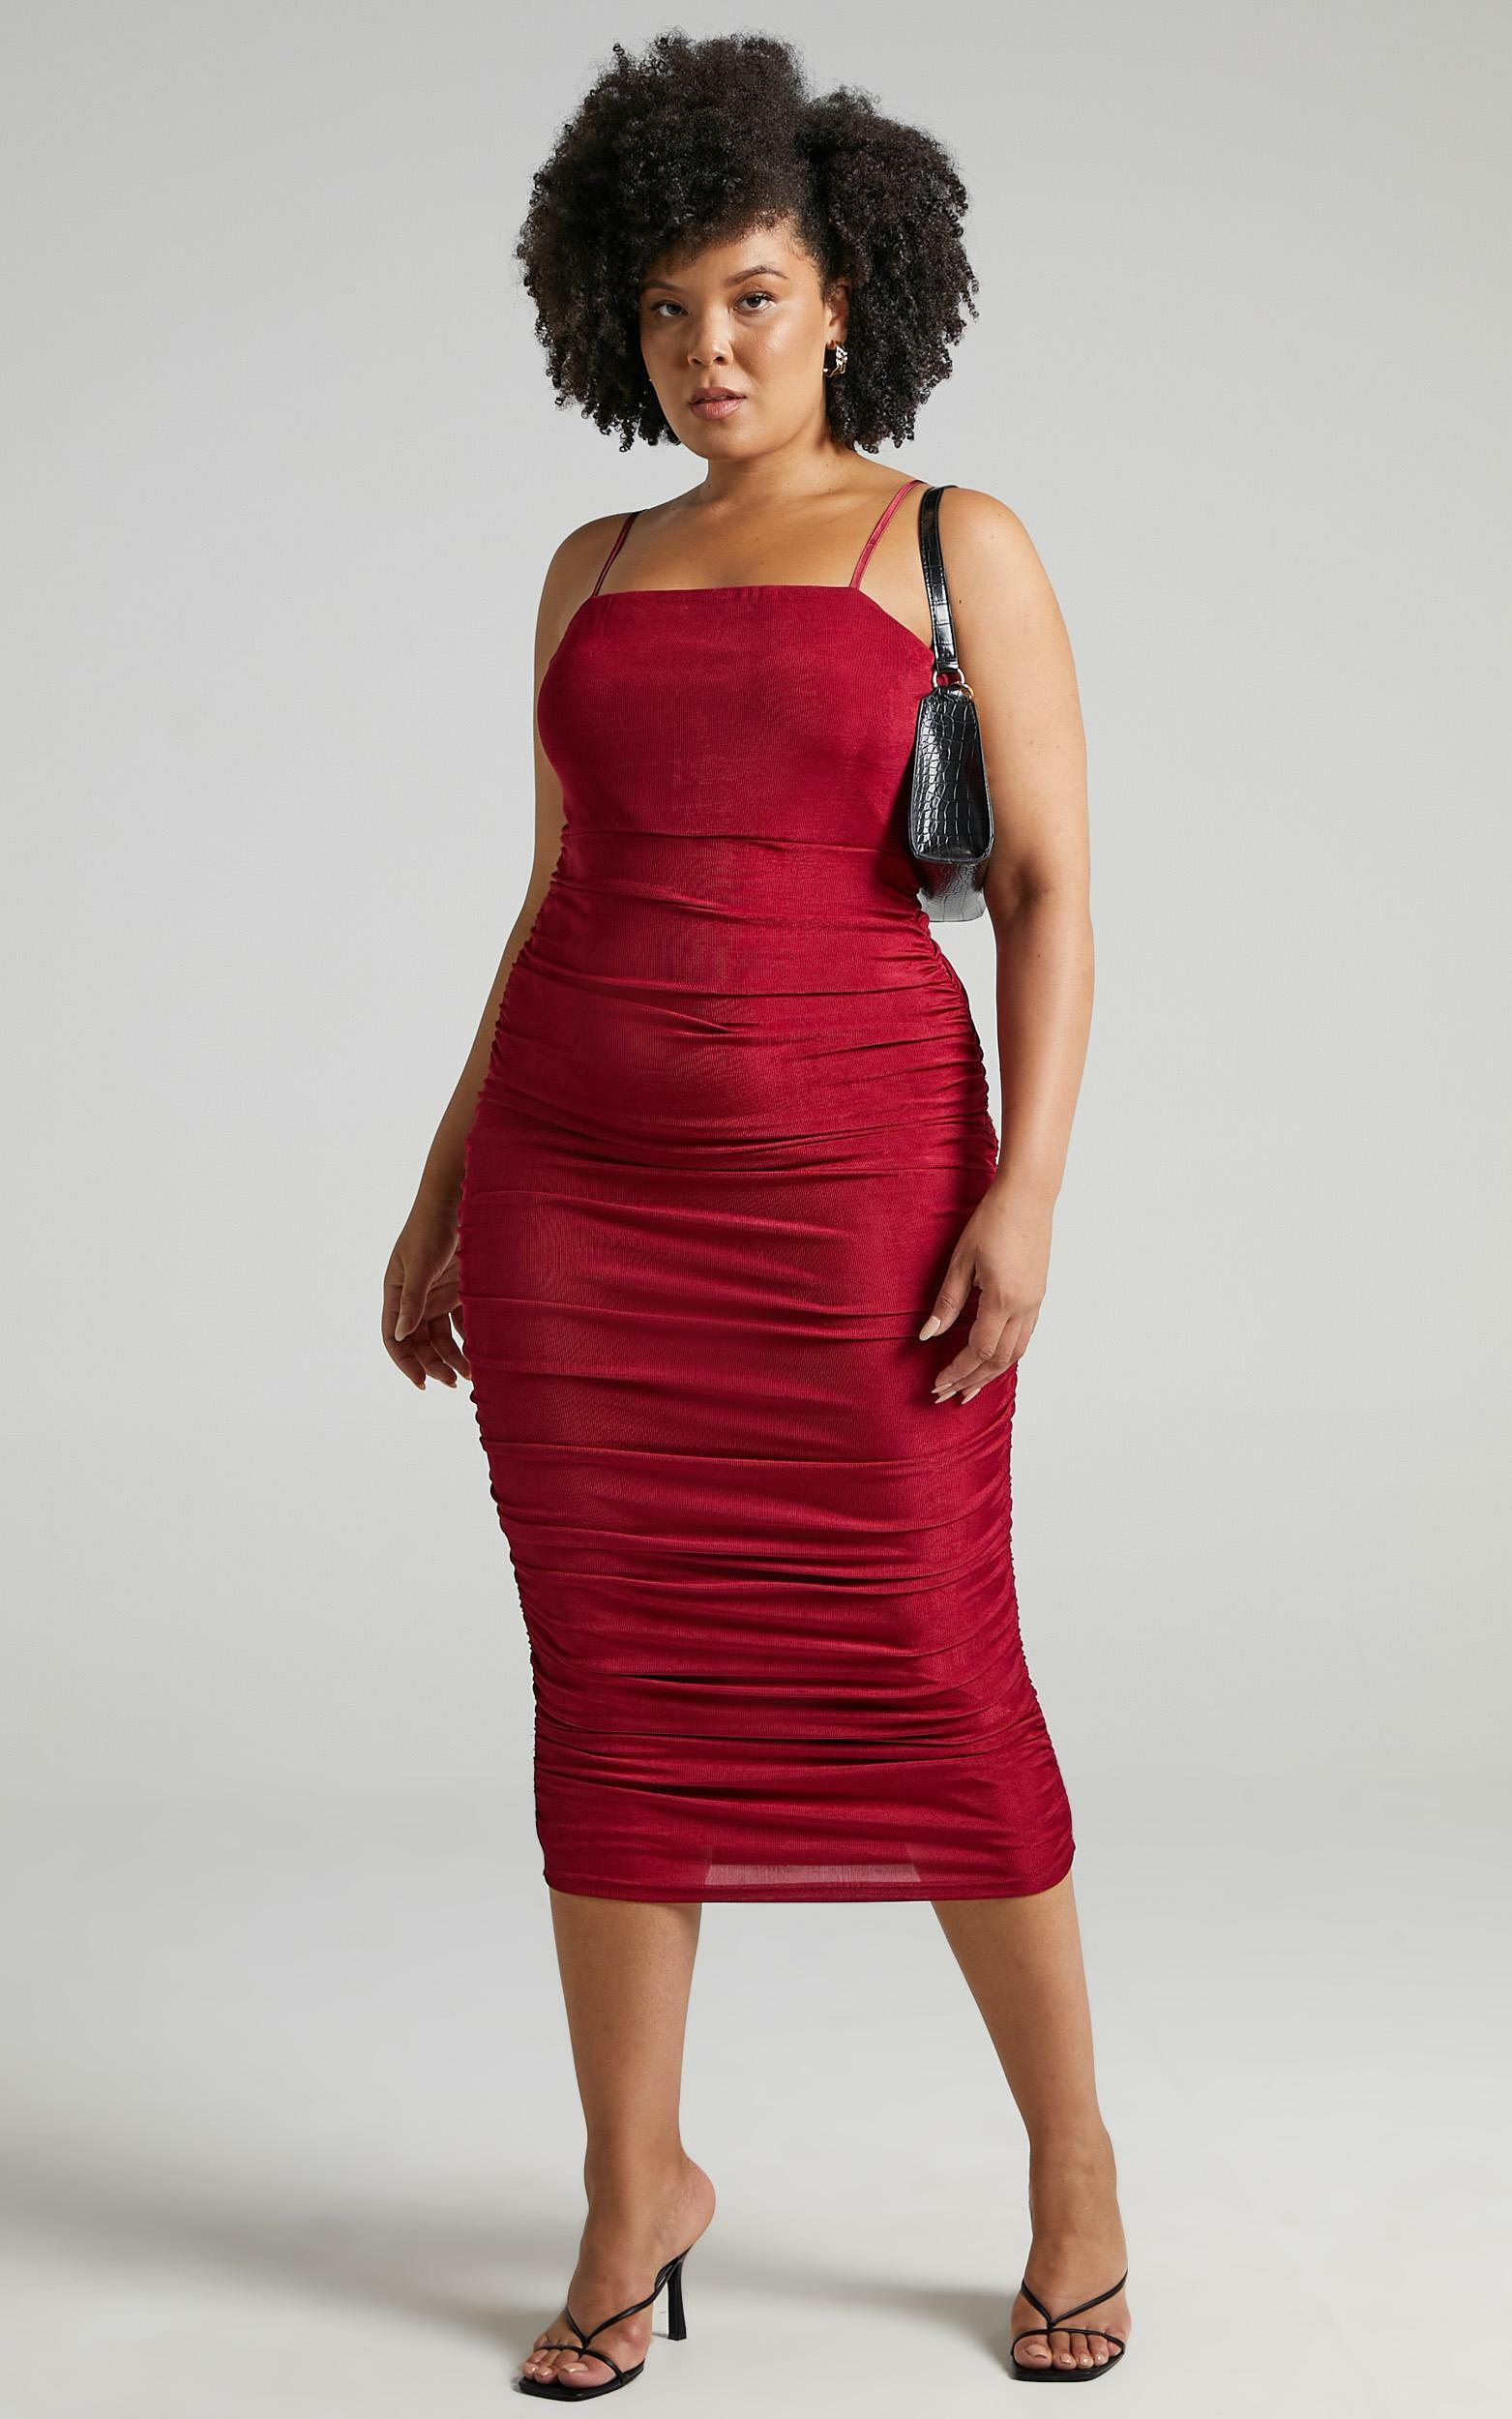 Commit To Me Bodycon Midi Dress in Wine - 04, WNE5, hi-res image number null